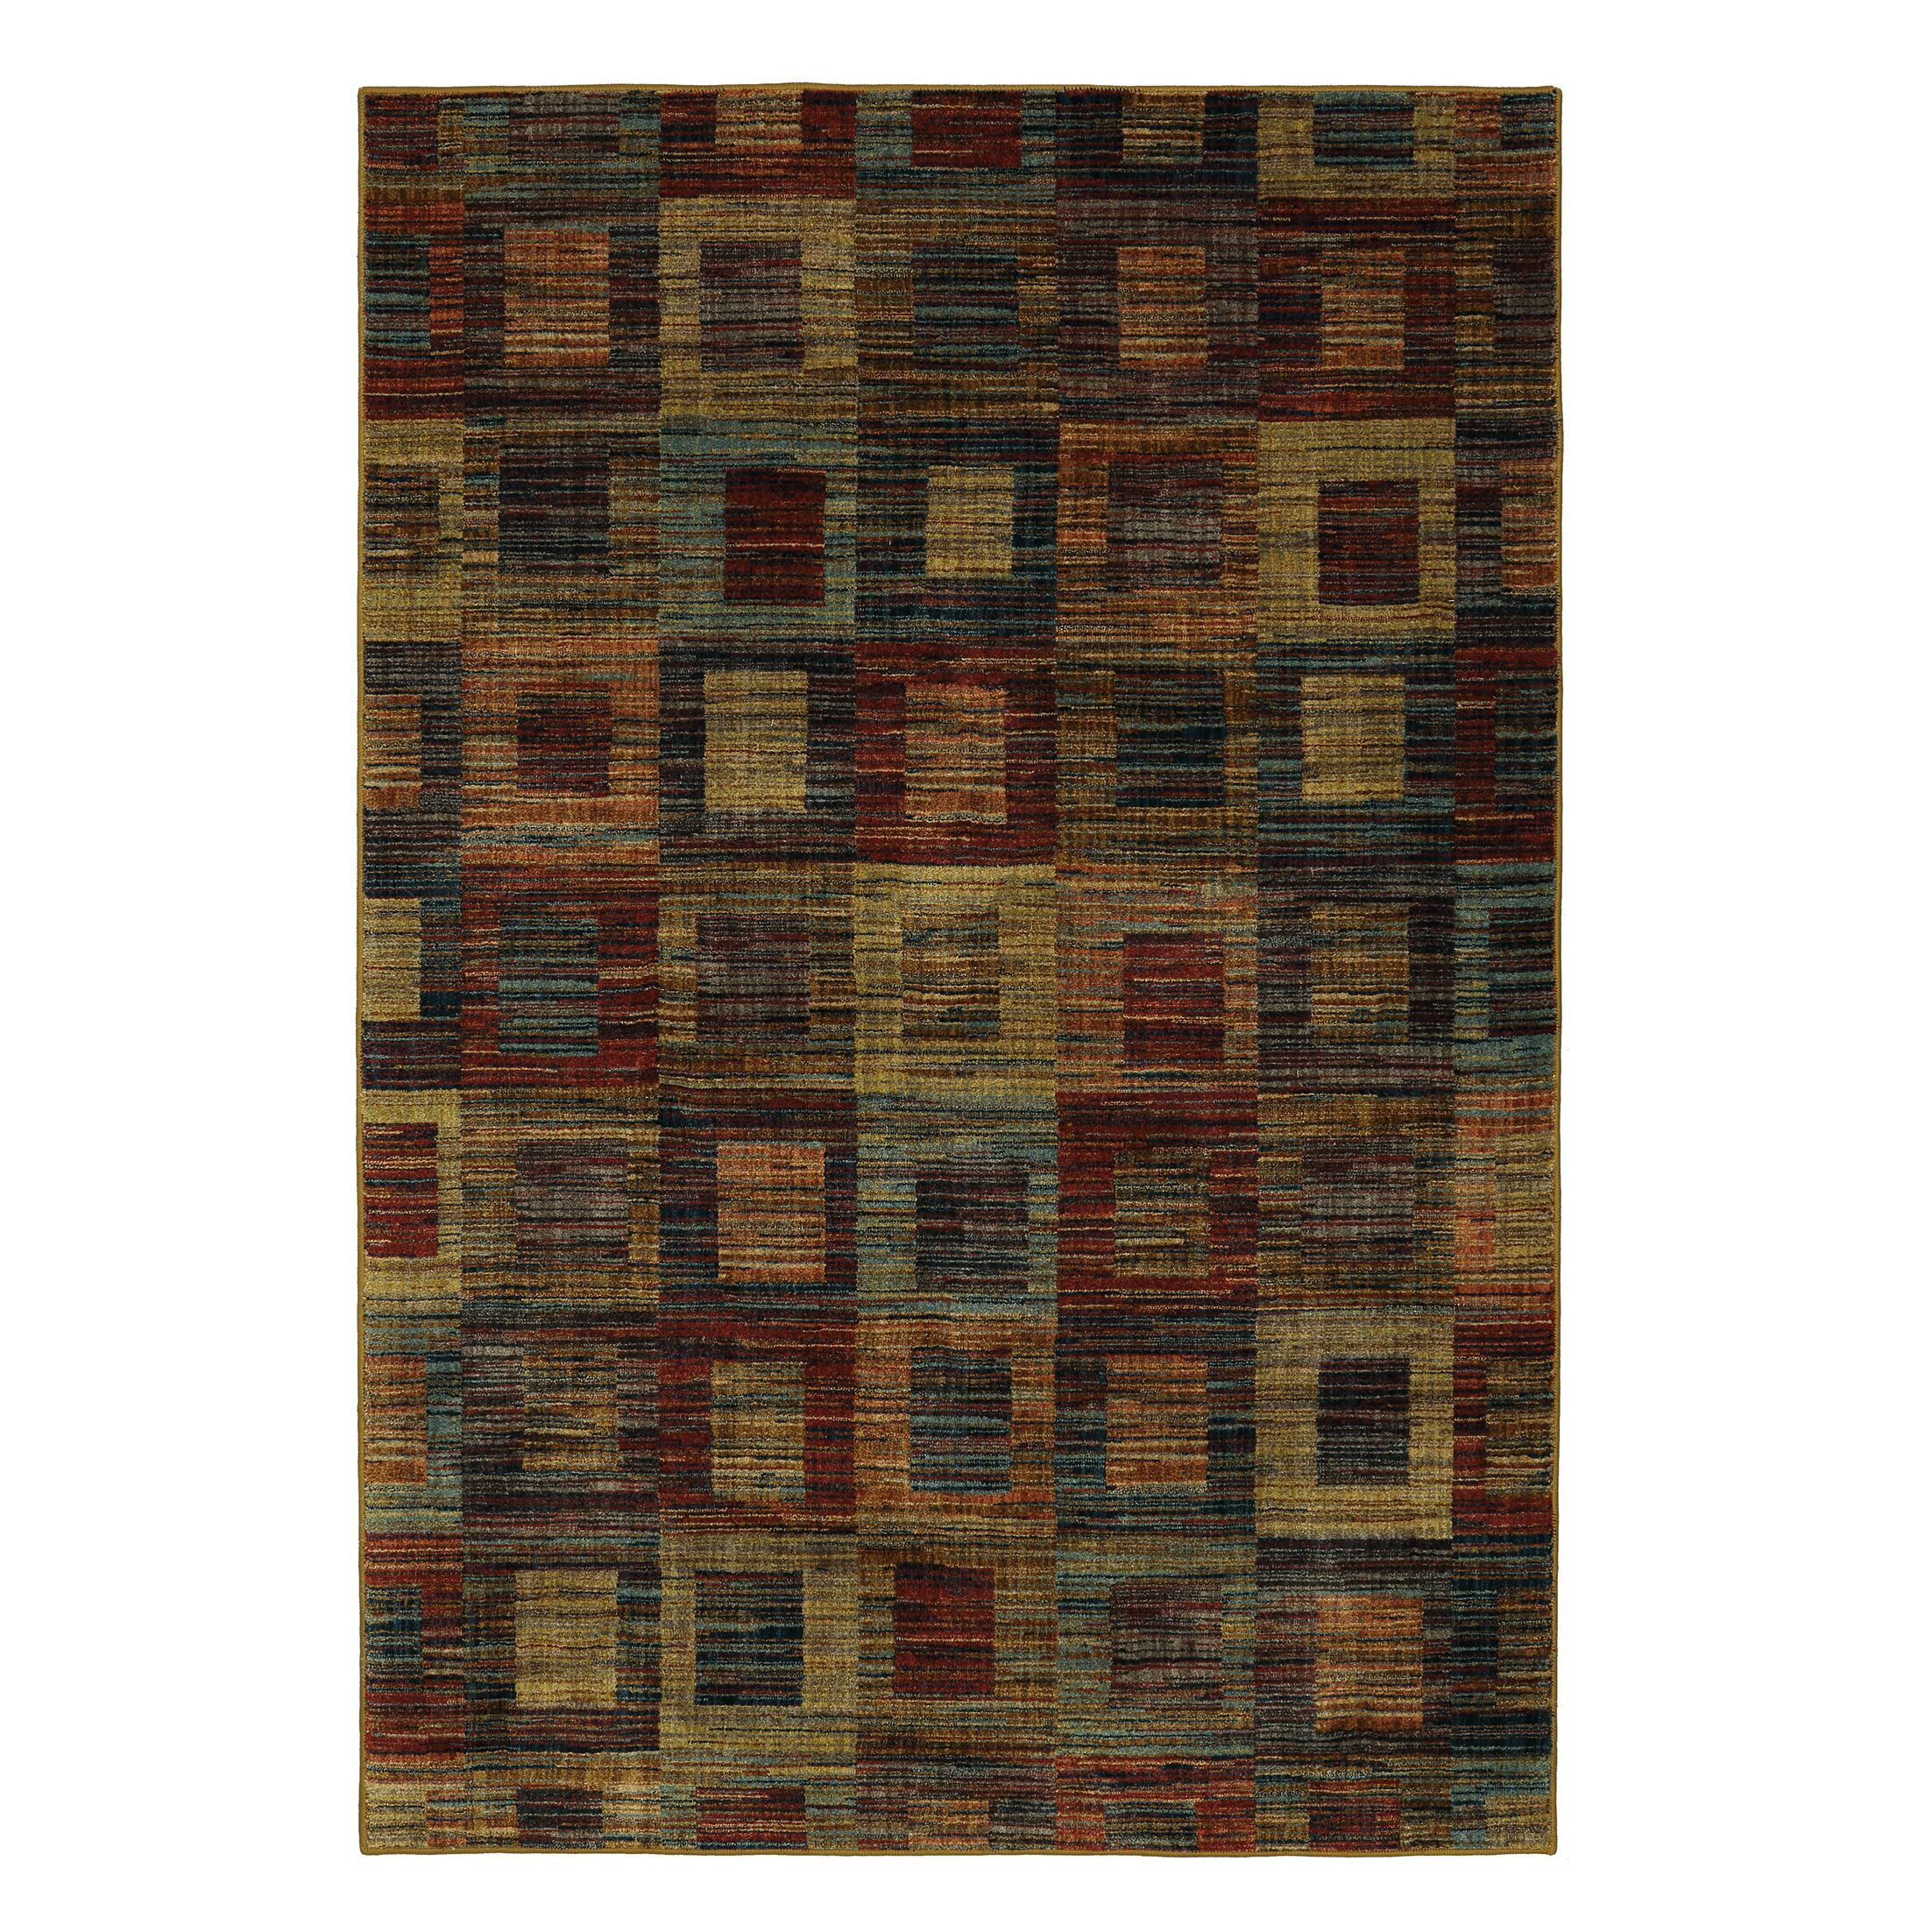 Arpdale Rustic Square Blue/Red Area Rug Rug Size: 5' x 8'